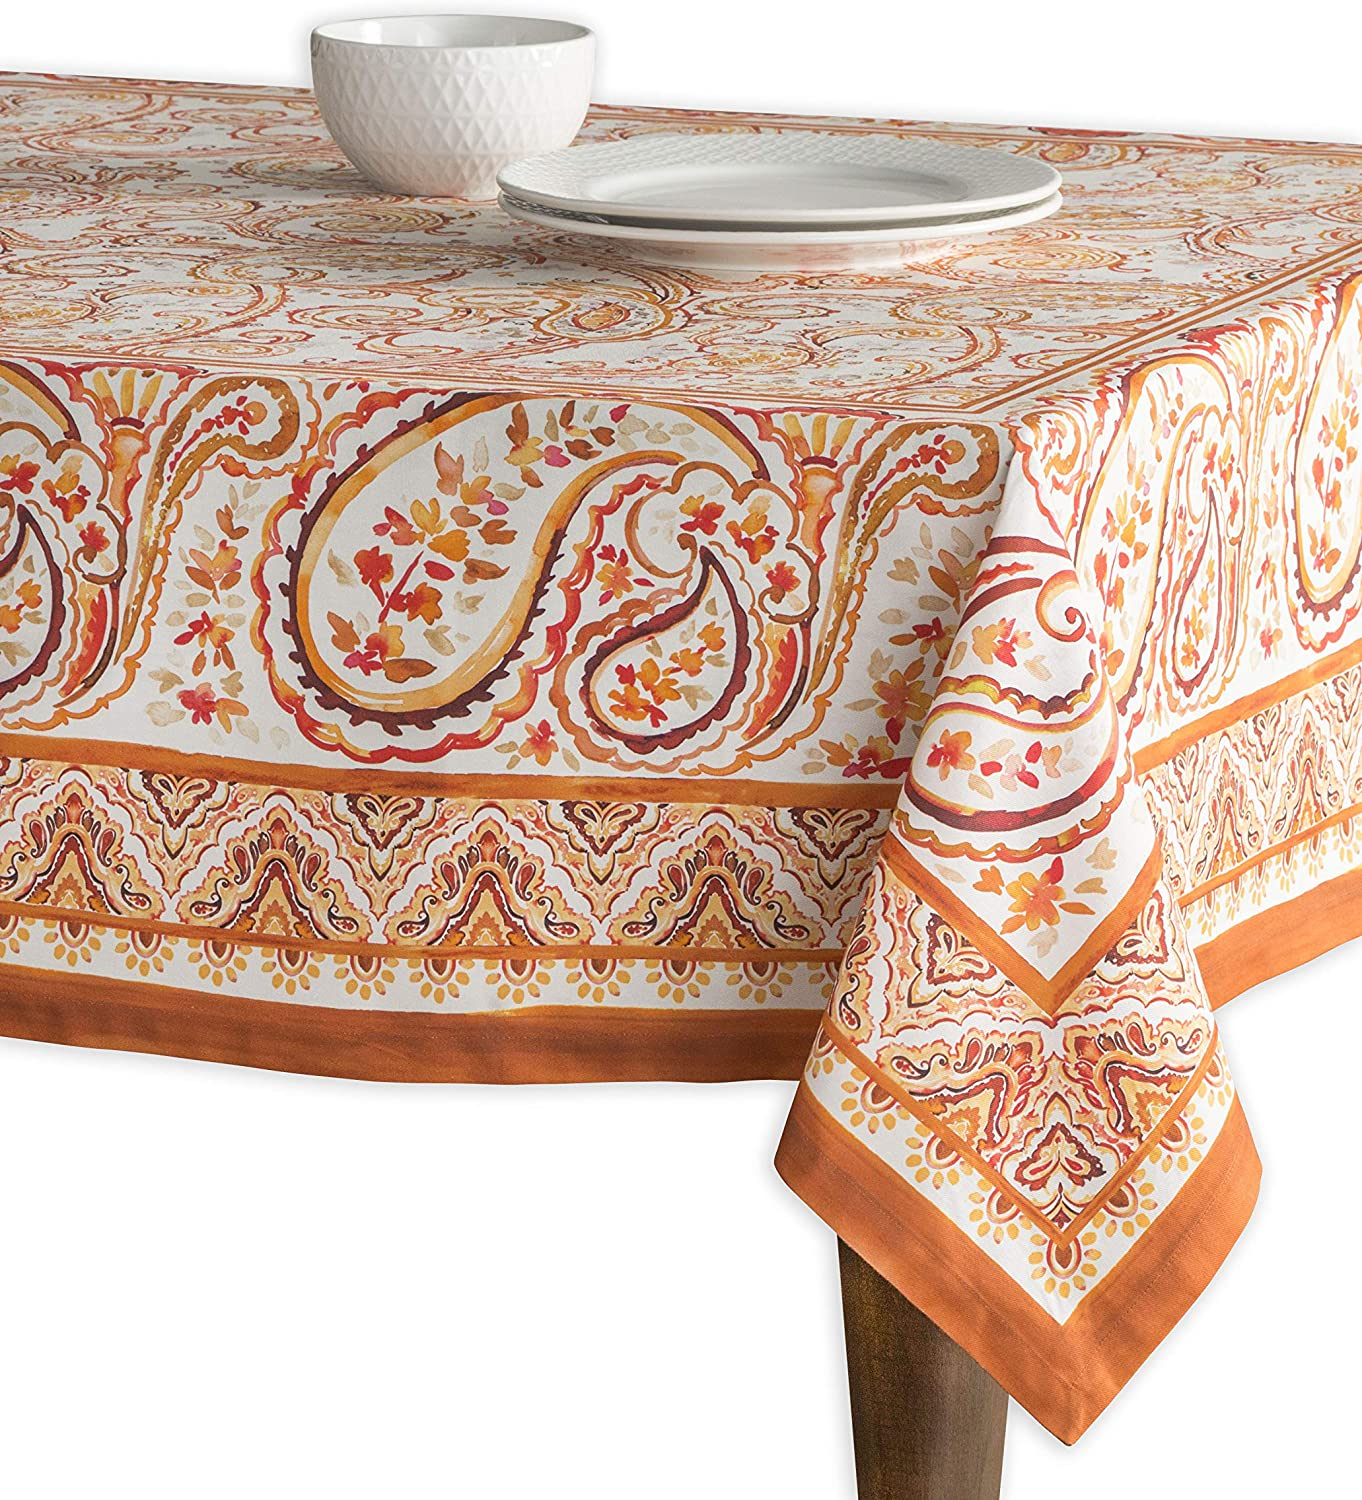 Maison d' Hermine Palatial Paisley 100% Cotton Tablecloth for Kitchen Dinning Tabletop Decoration Parties Weddings Thanksgiving Christmas (Rectangle, 60 Inch by 120 Inch)